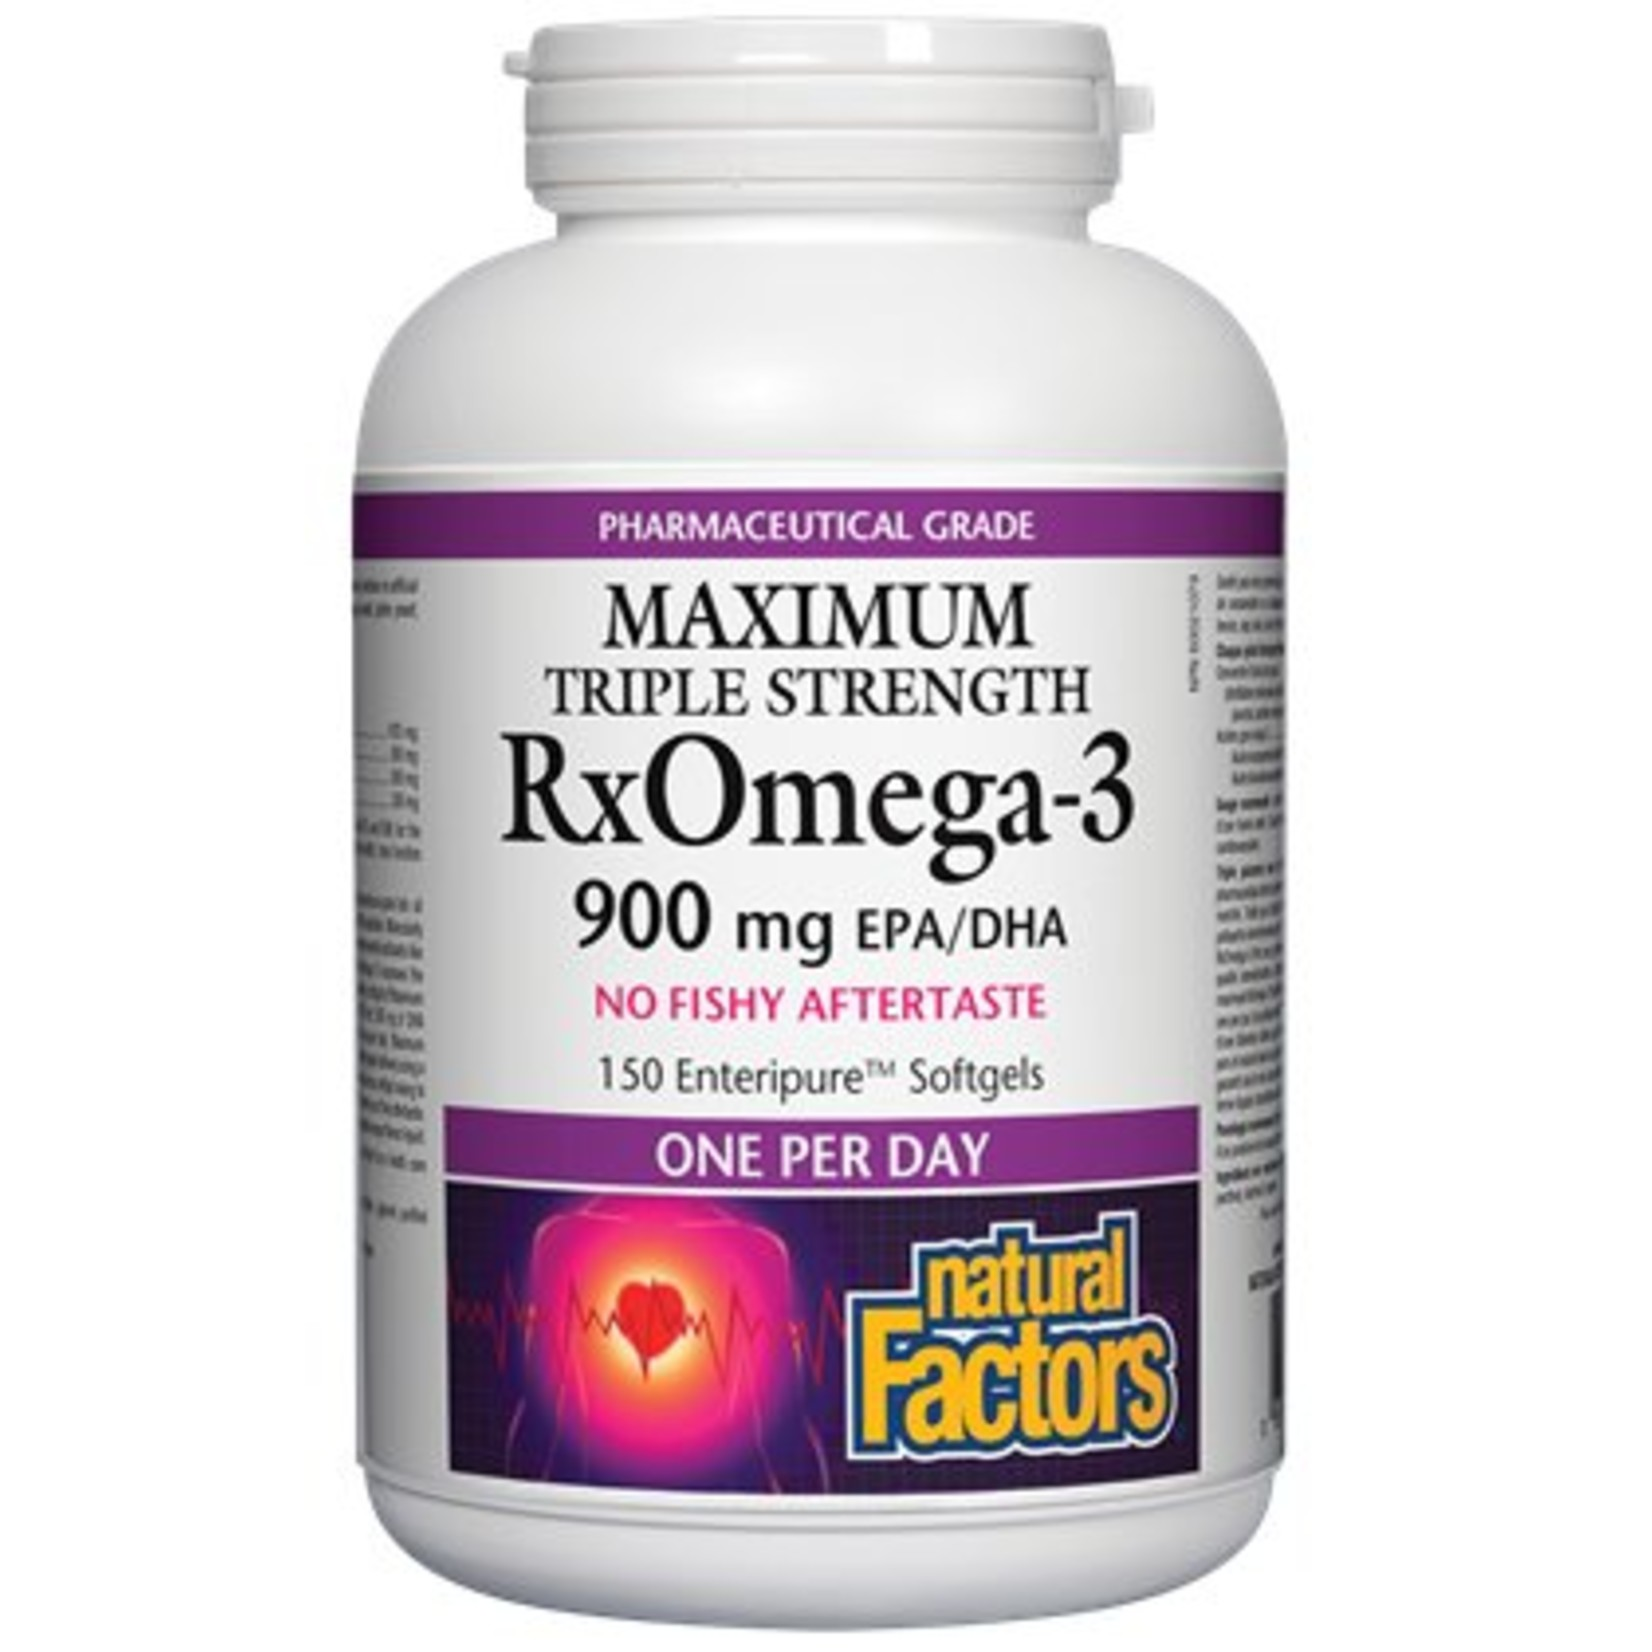 Natural Factors Natural Factors Rx Omega 3 Factors One A Day 150